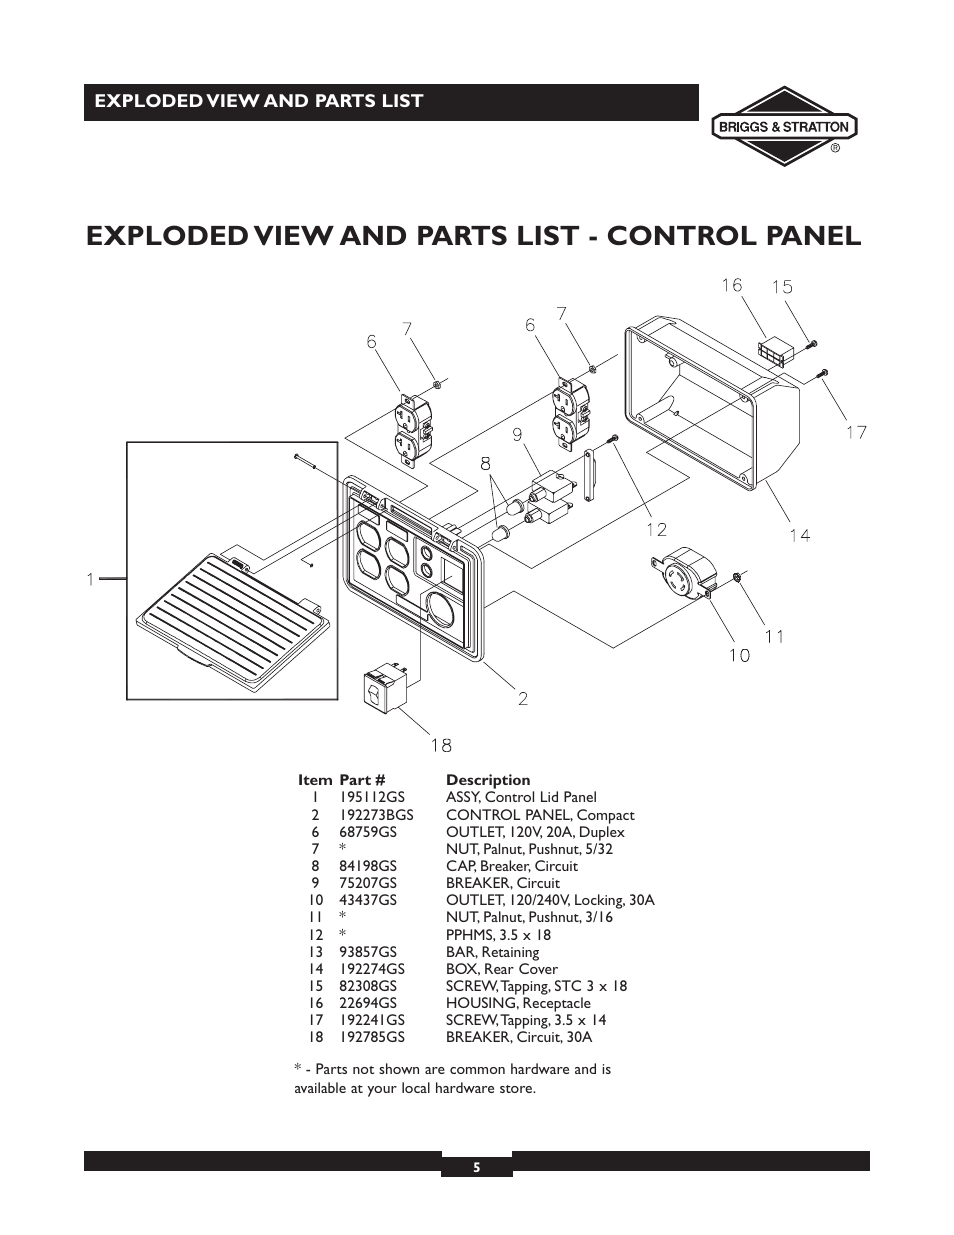 6 5 Briggs And Stratton Parts Diagram Trusted Wiring Diagrams 18 Hp Intek Engine Exploded View List Control Panel